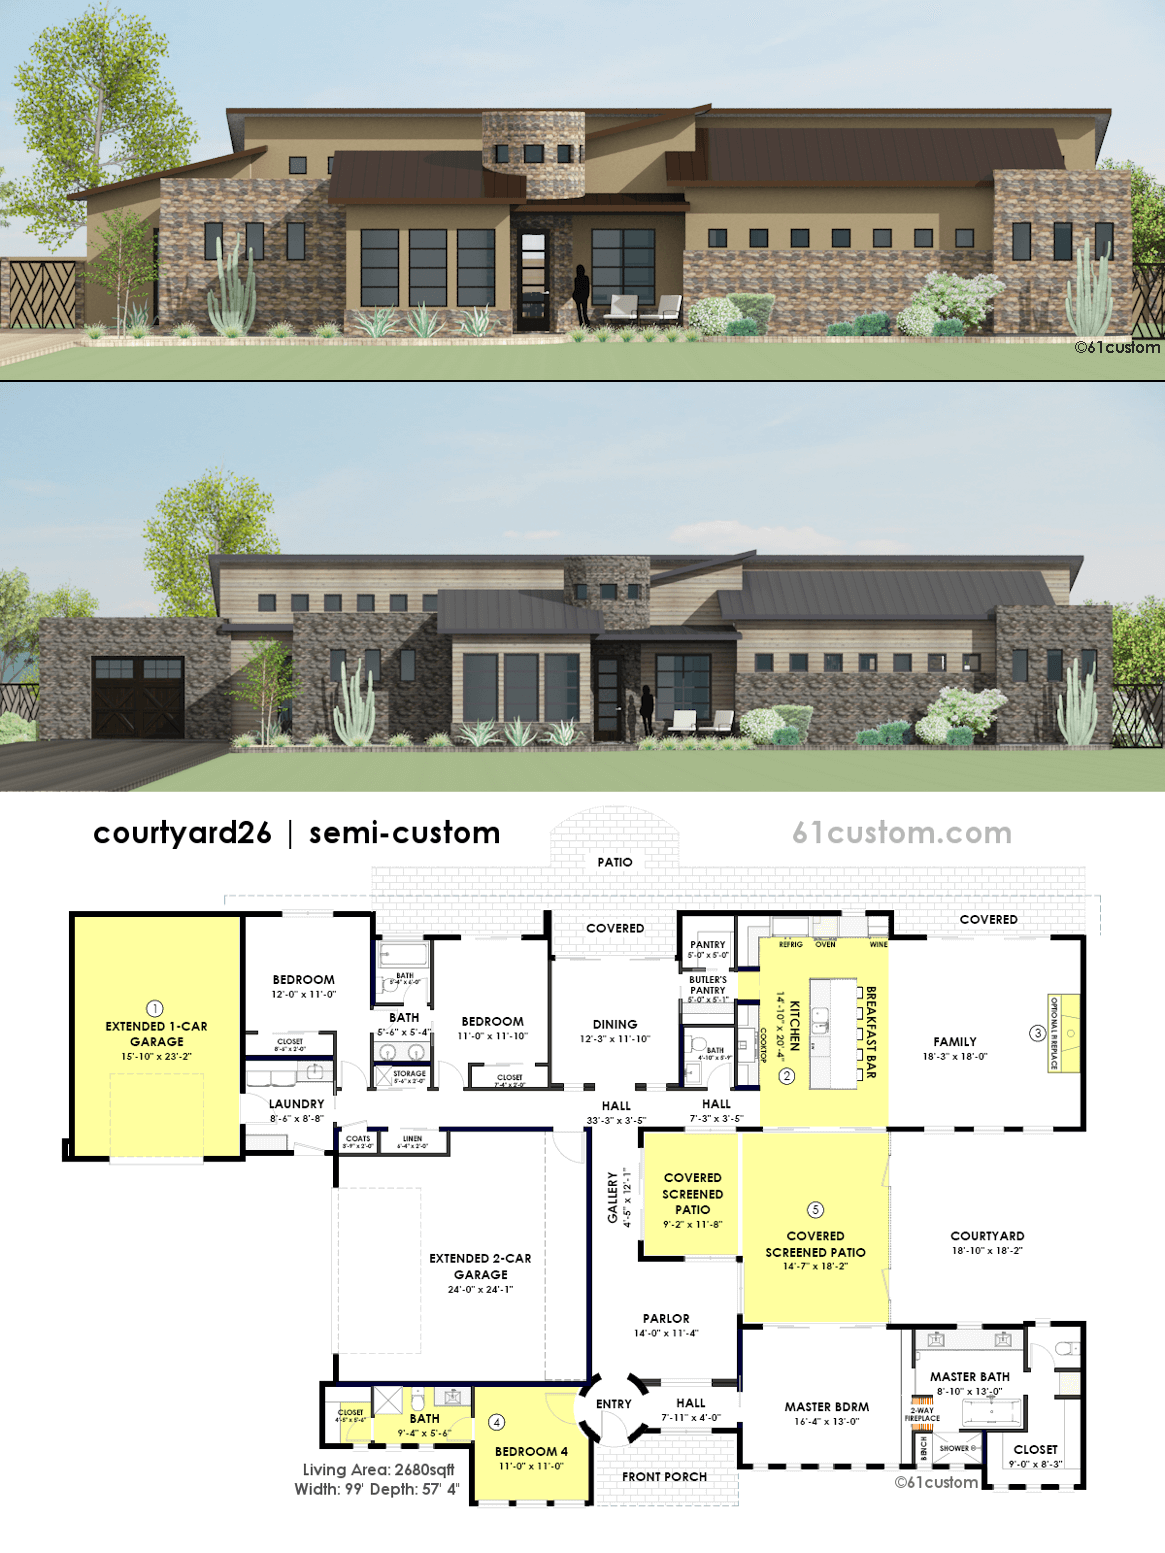 courtyard house plan contemporary side courtyard house plan 61custom contemporary modern house plans 4032